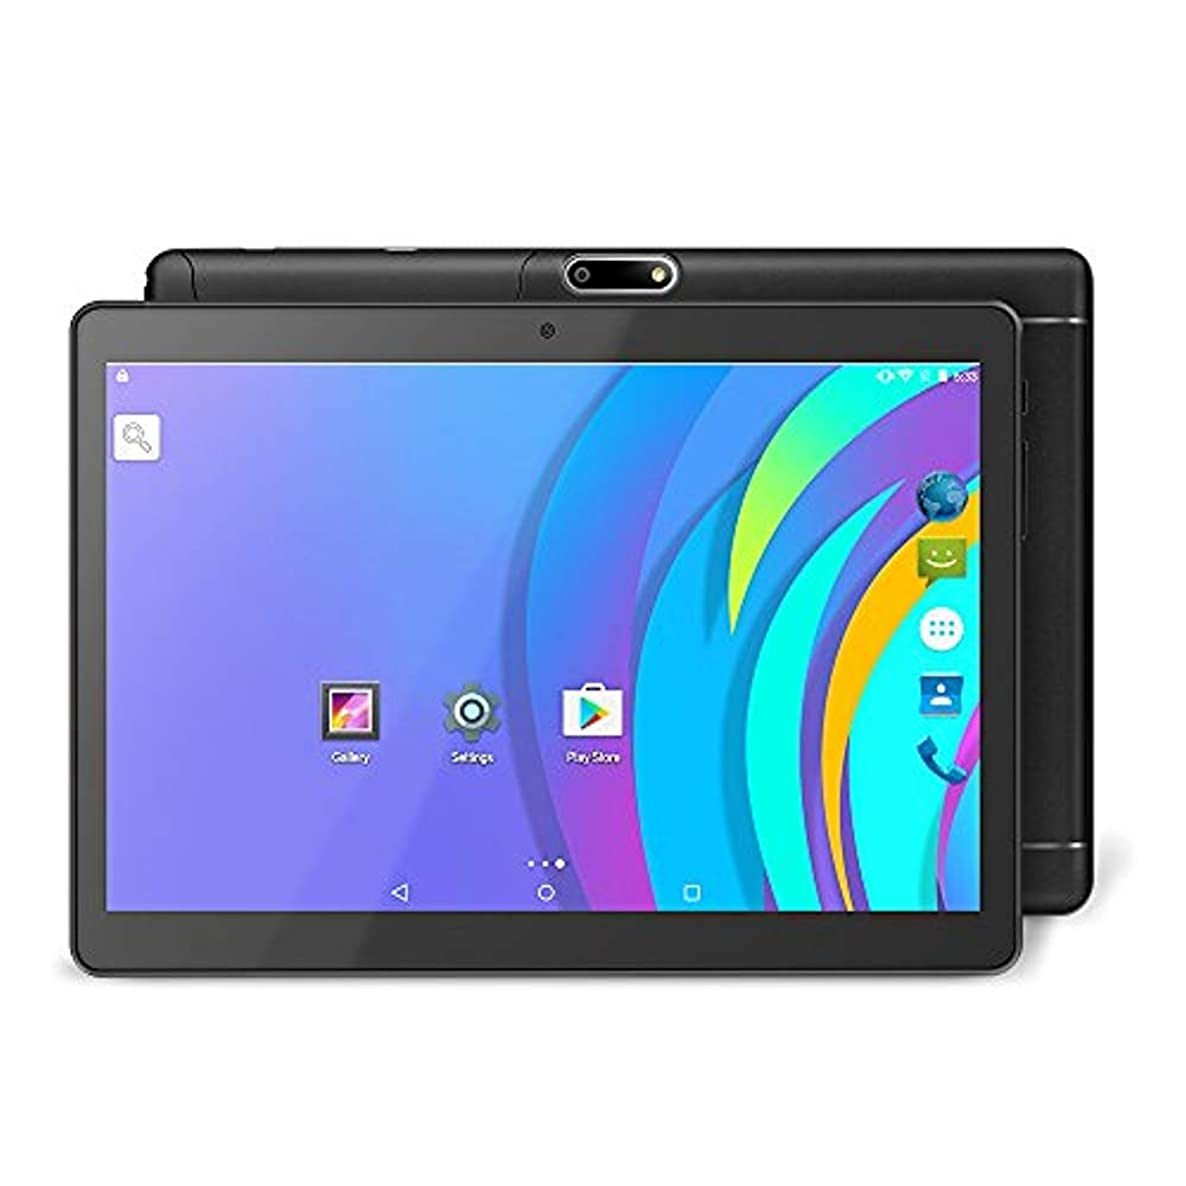 EOANVER K127 9.6 inch Android Tablet/3G Unlocked Smart Phone, Support Dual SIM Card, 16GB Storage, Quad-Core Processor, IPS Touch Screen, Dual Camera & WiFi(Black)